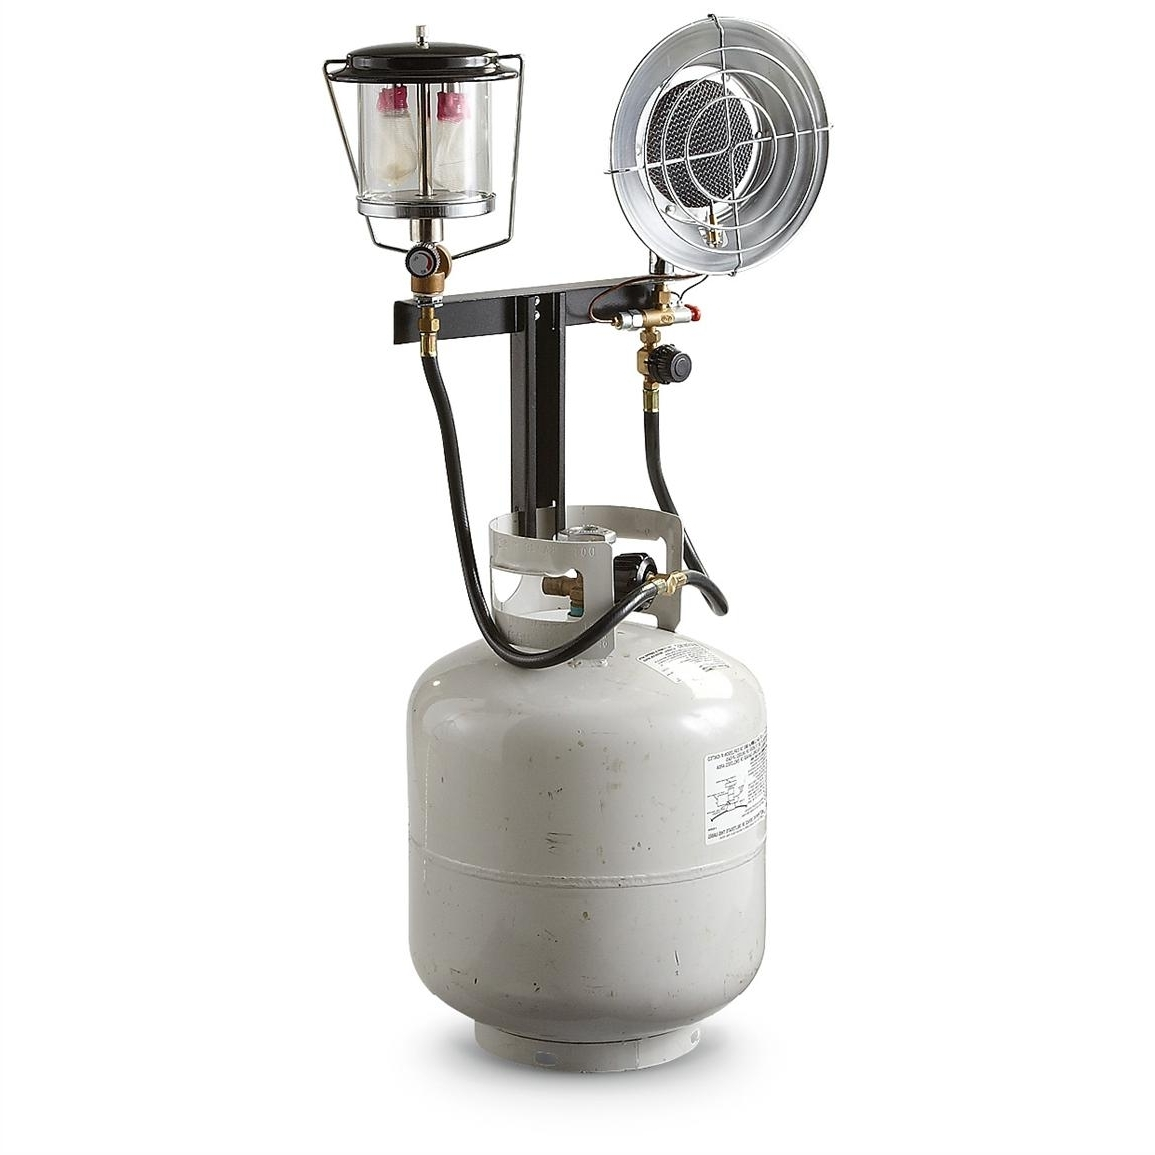 Propane: Propane Lantern Pertaining To Trendy Outdoor Propane Lanterns (View 16 of 20)